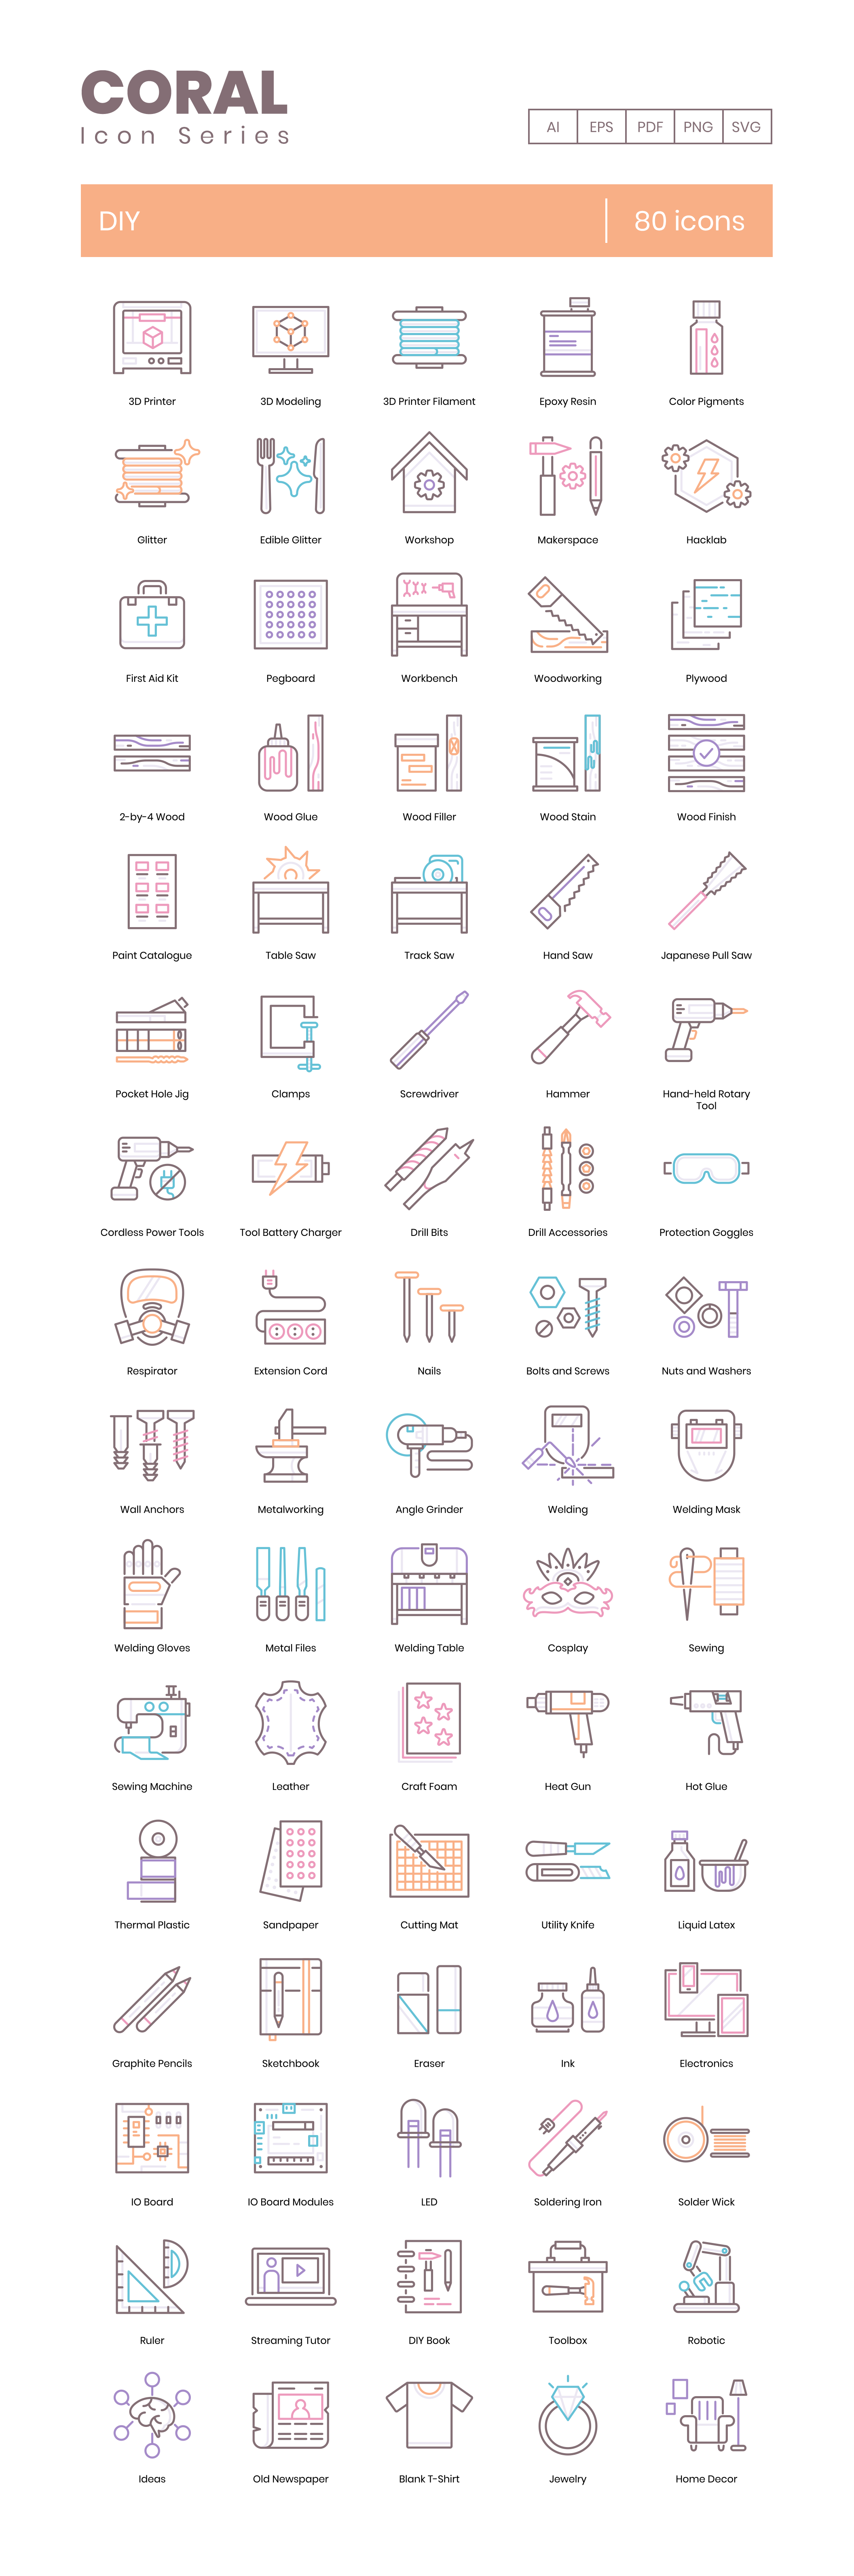 DIY Vector Icons Preview Image